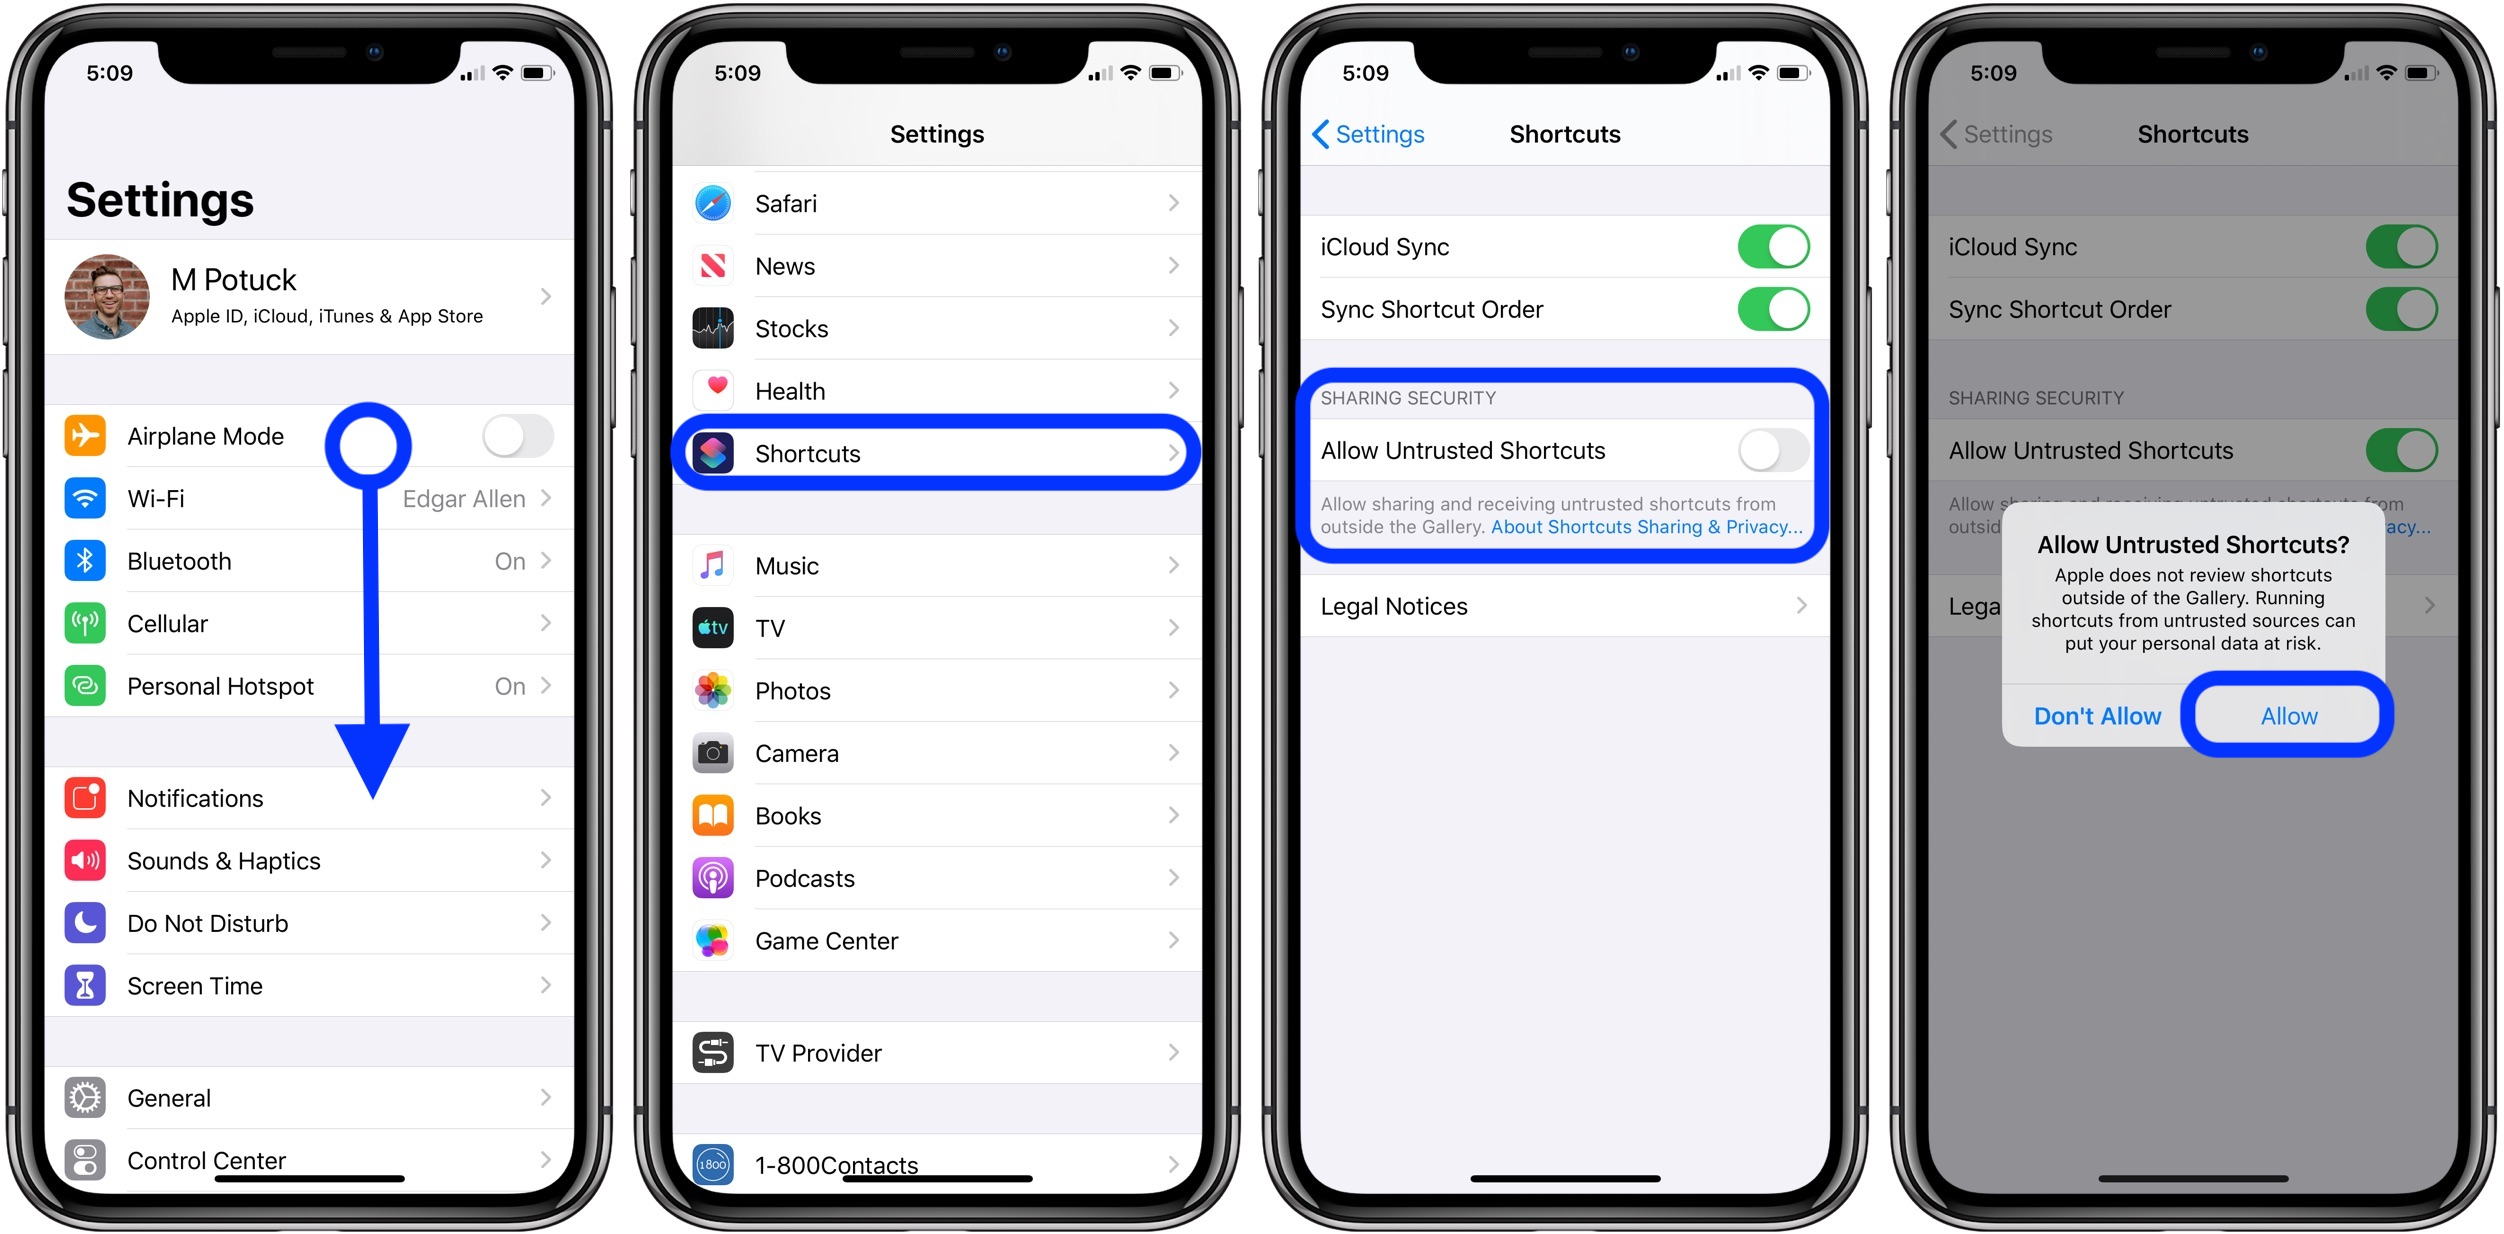 How to allow Untrusted Shortcuts iOS 13